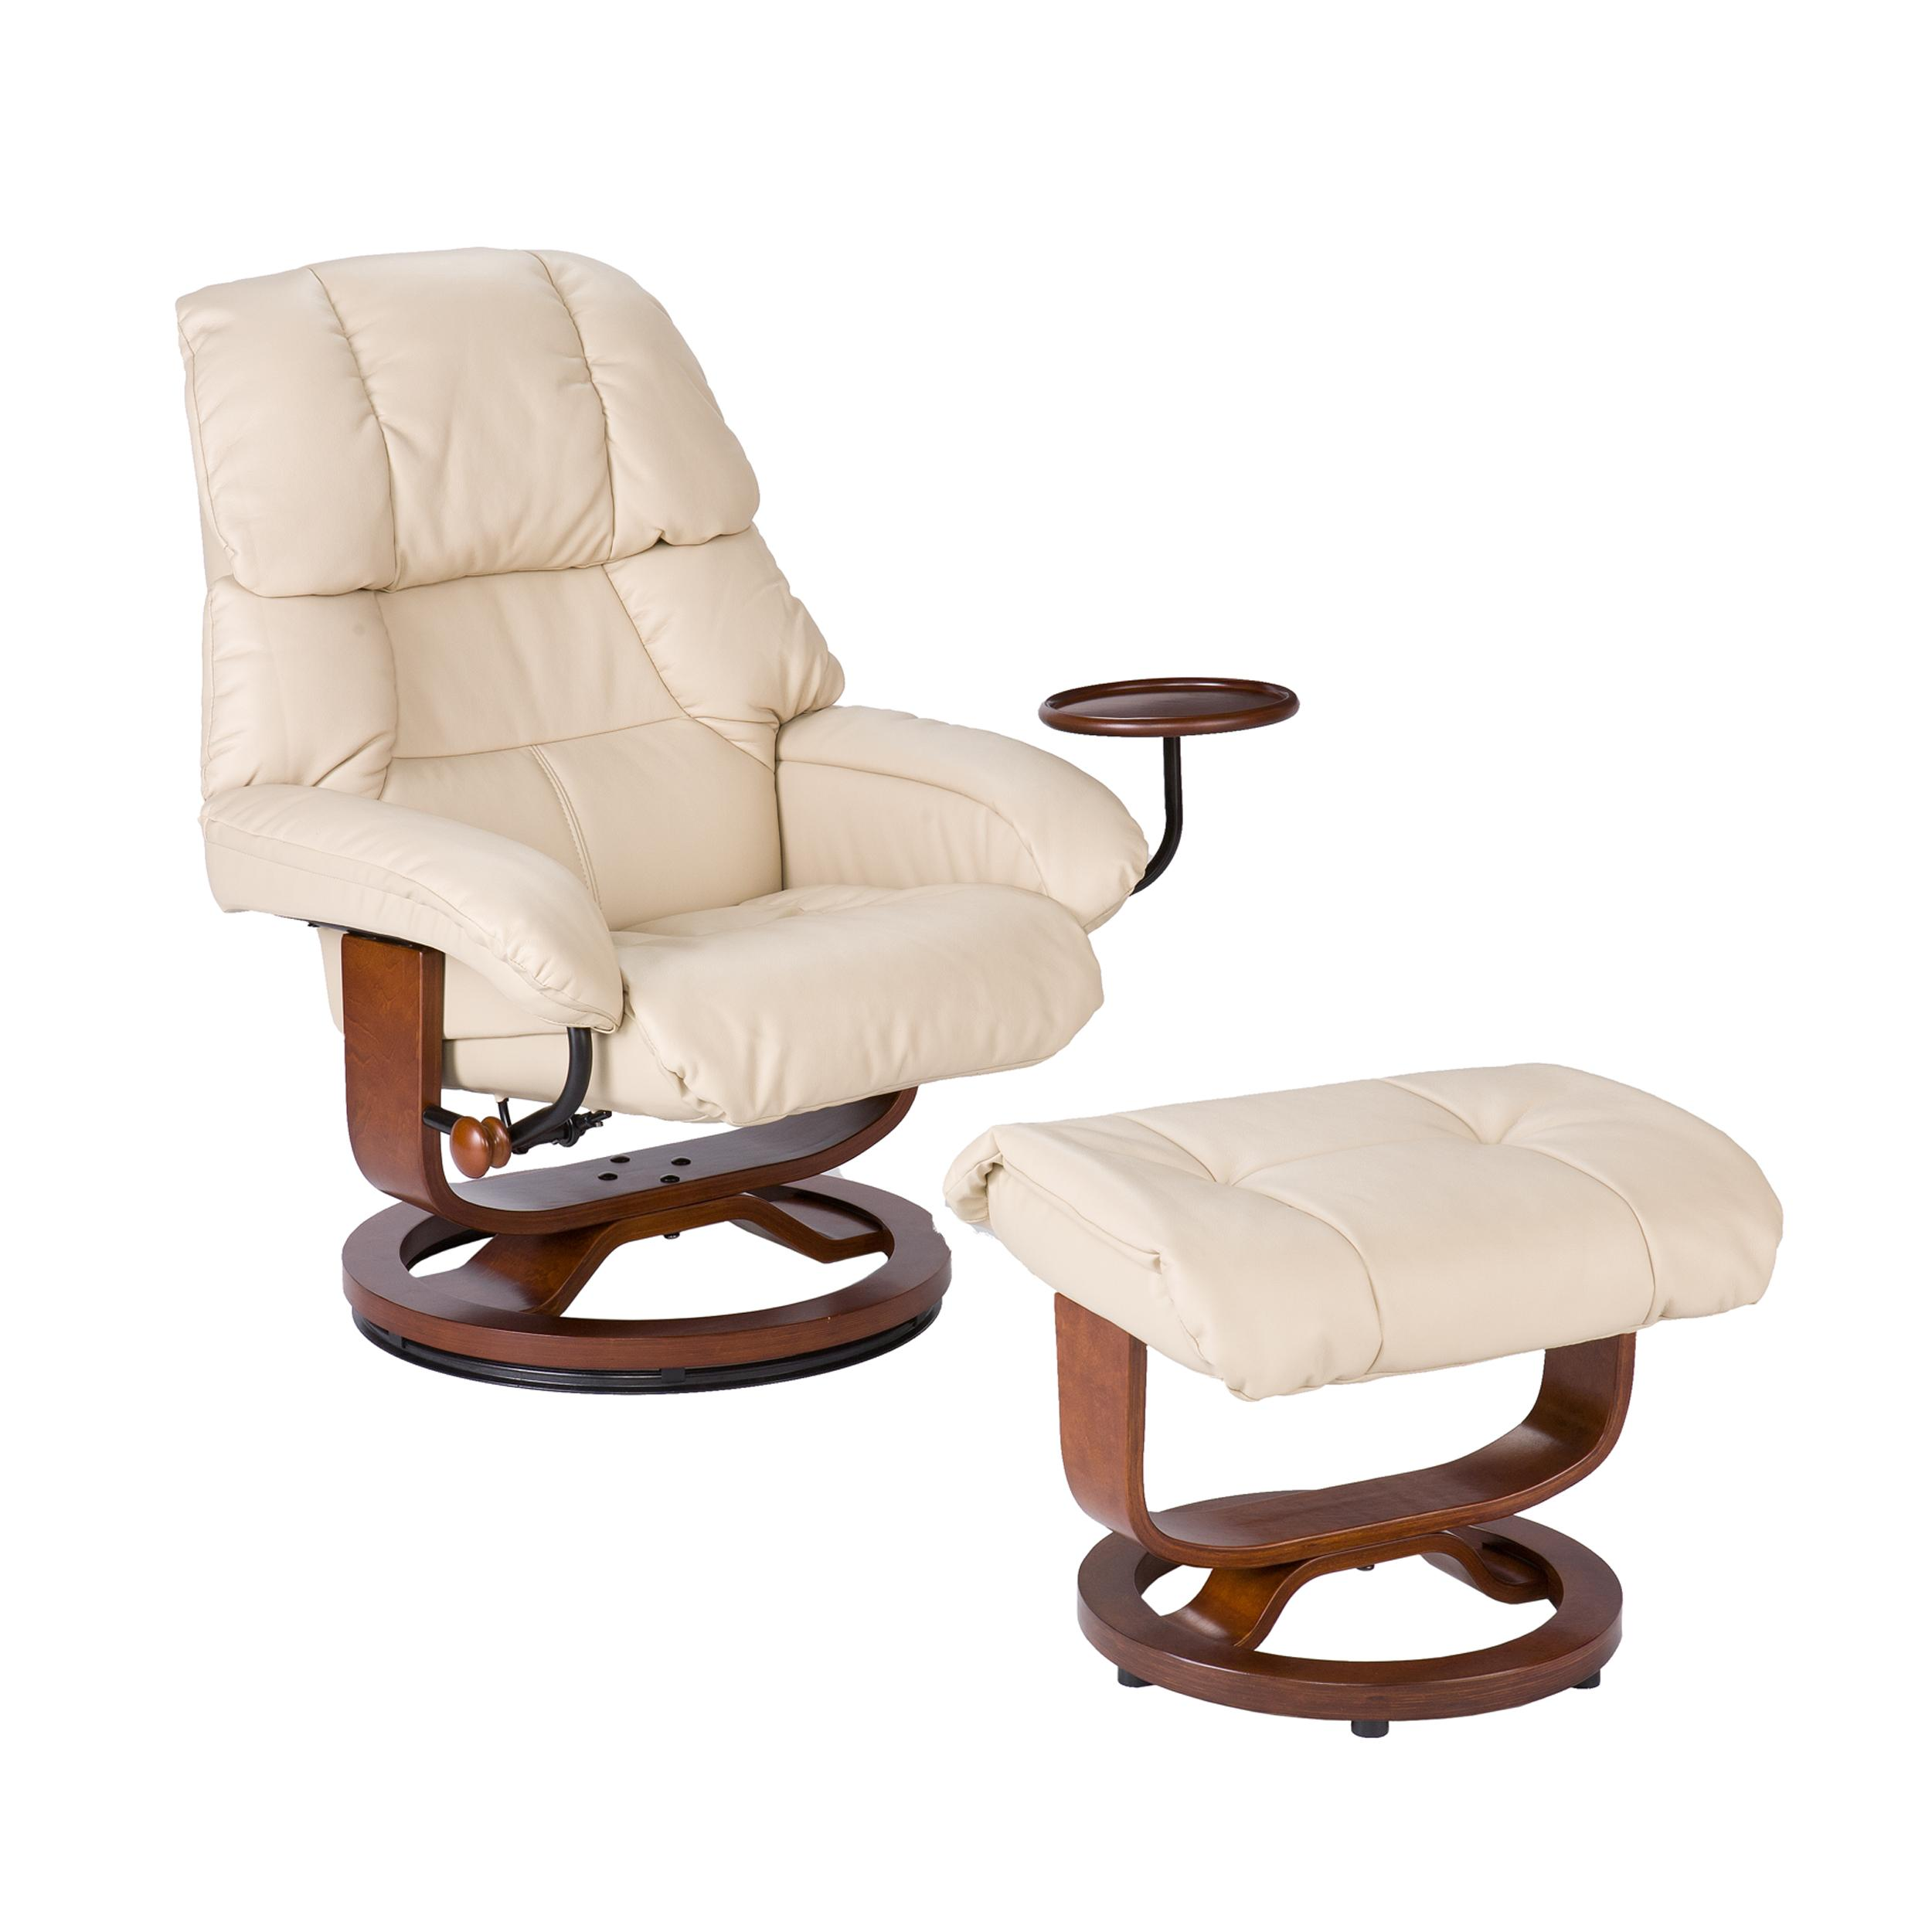 View larger  sc 1 st  Amazon.com & Amazon.com: Bonded Leather Recliner and Ottoman - Taupe: Kitchen ... islam-shia.org